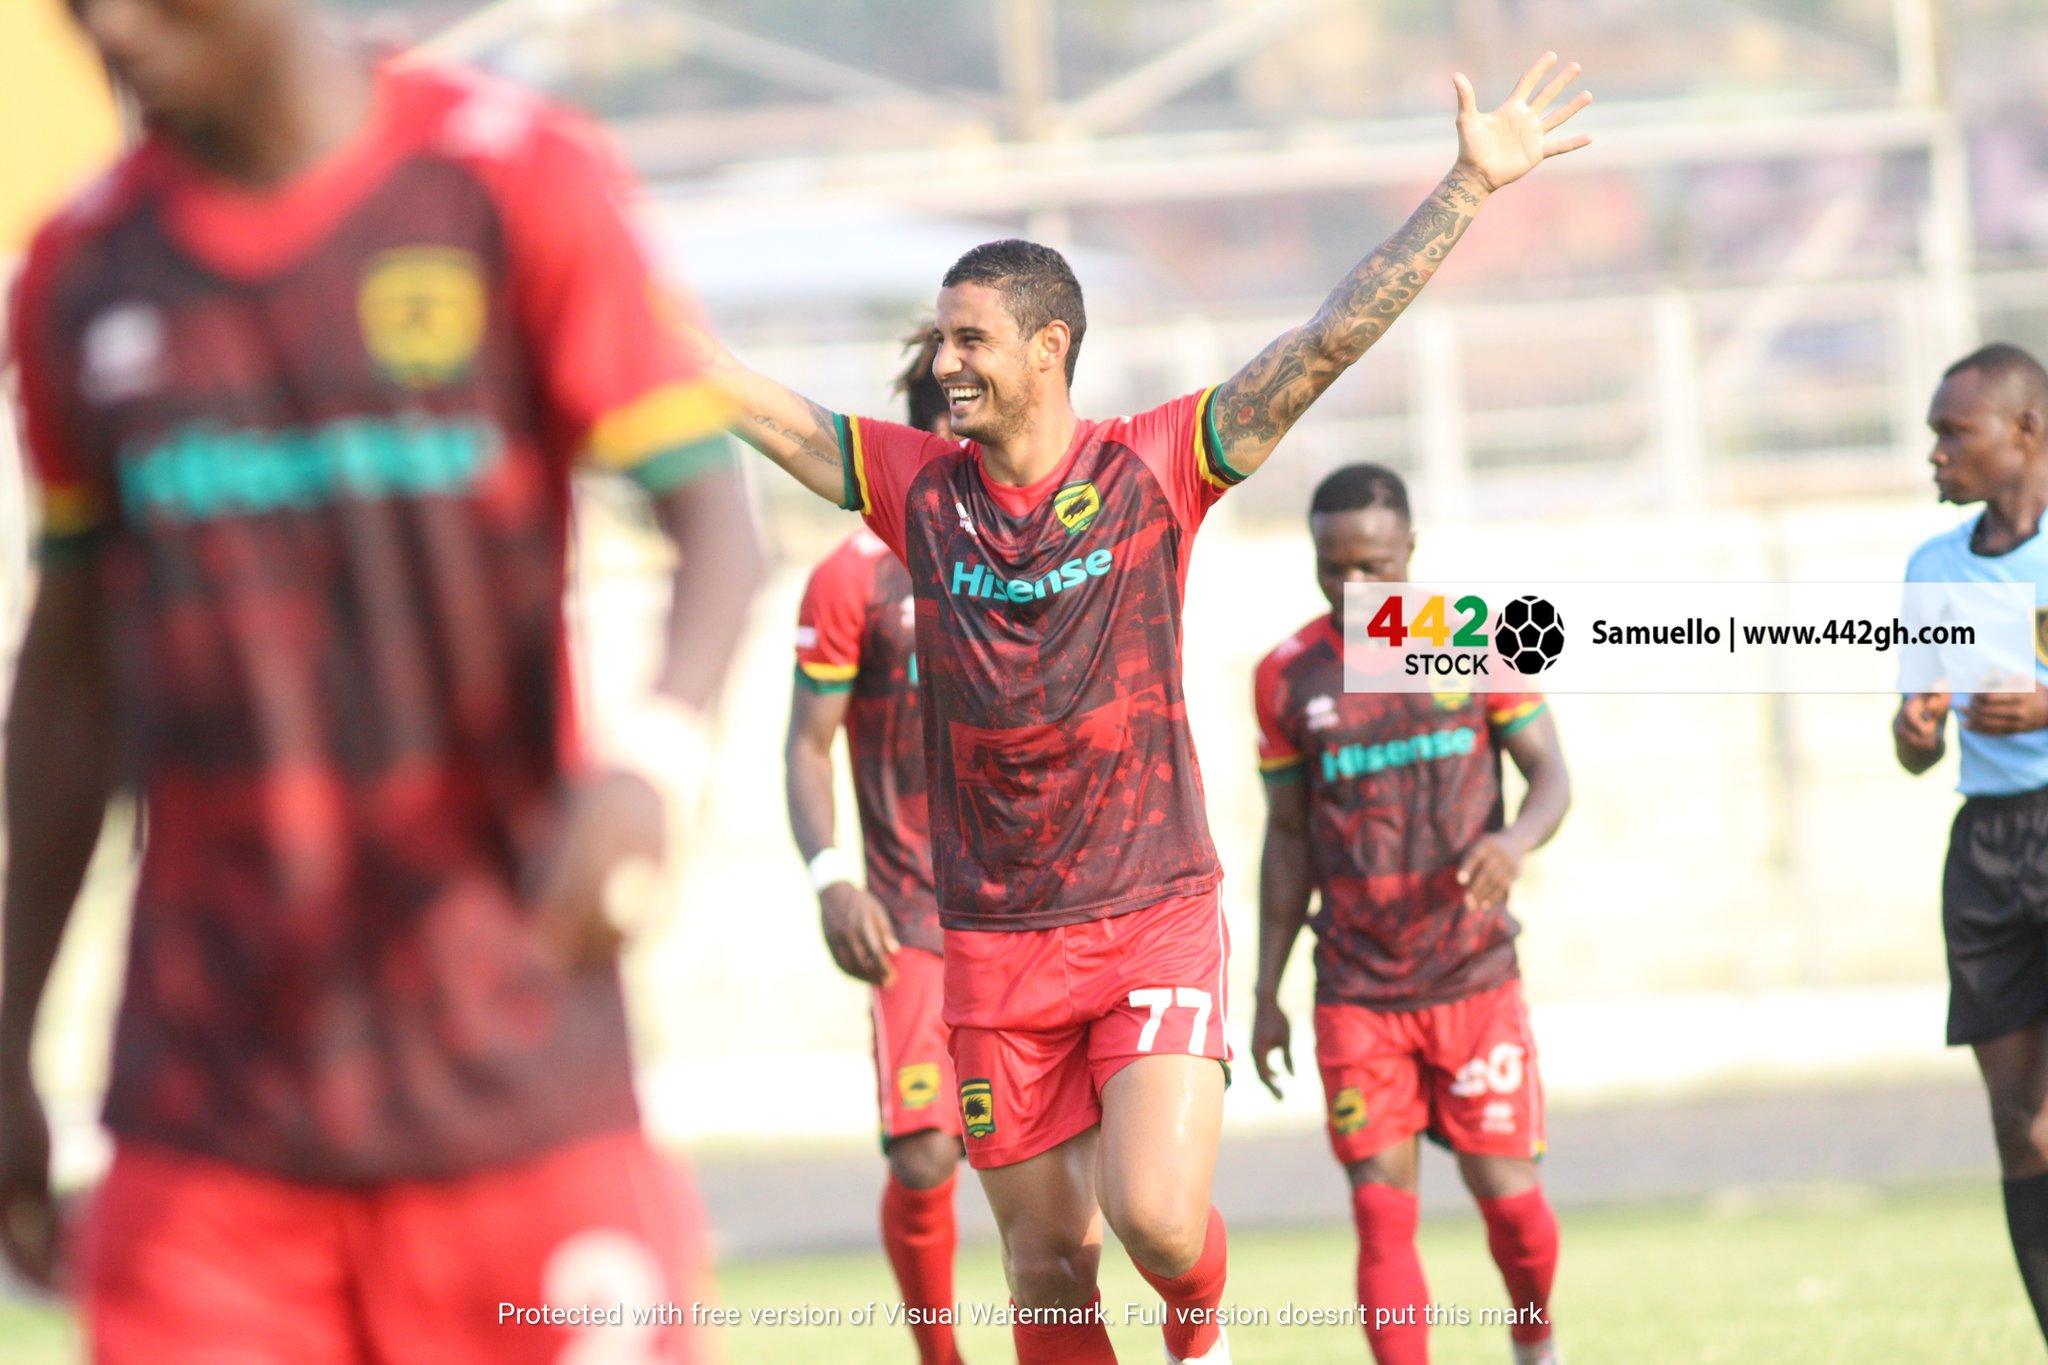 EyYqzBpWUAMjYfE?format=jpg&name=large - PHOTOS: Brazilian Striker Michael Vinicius Scores First Asante Kotoko goal On His Debut game against Bechem United